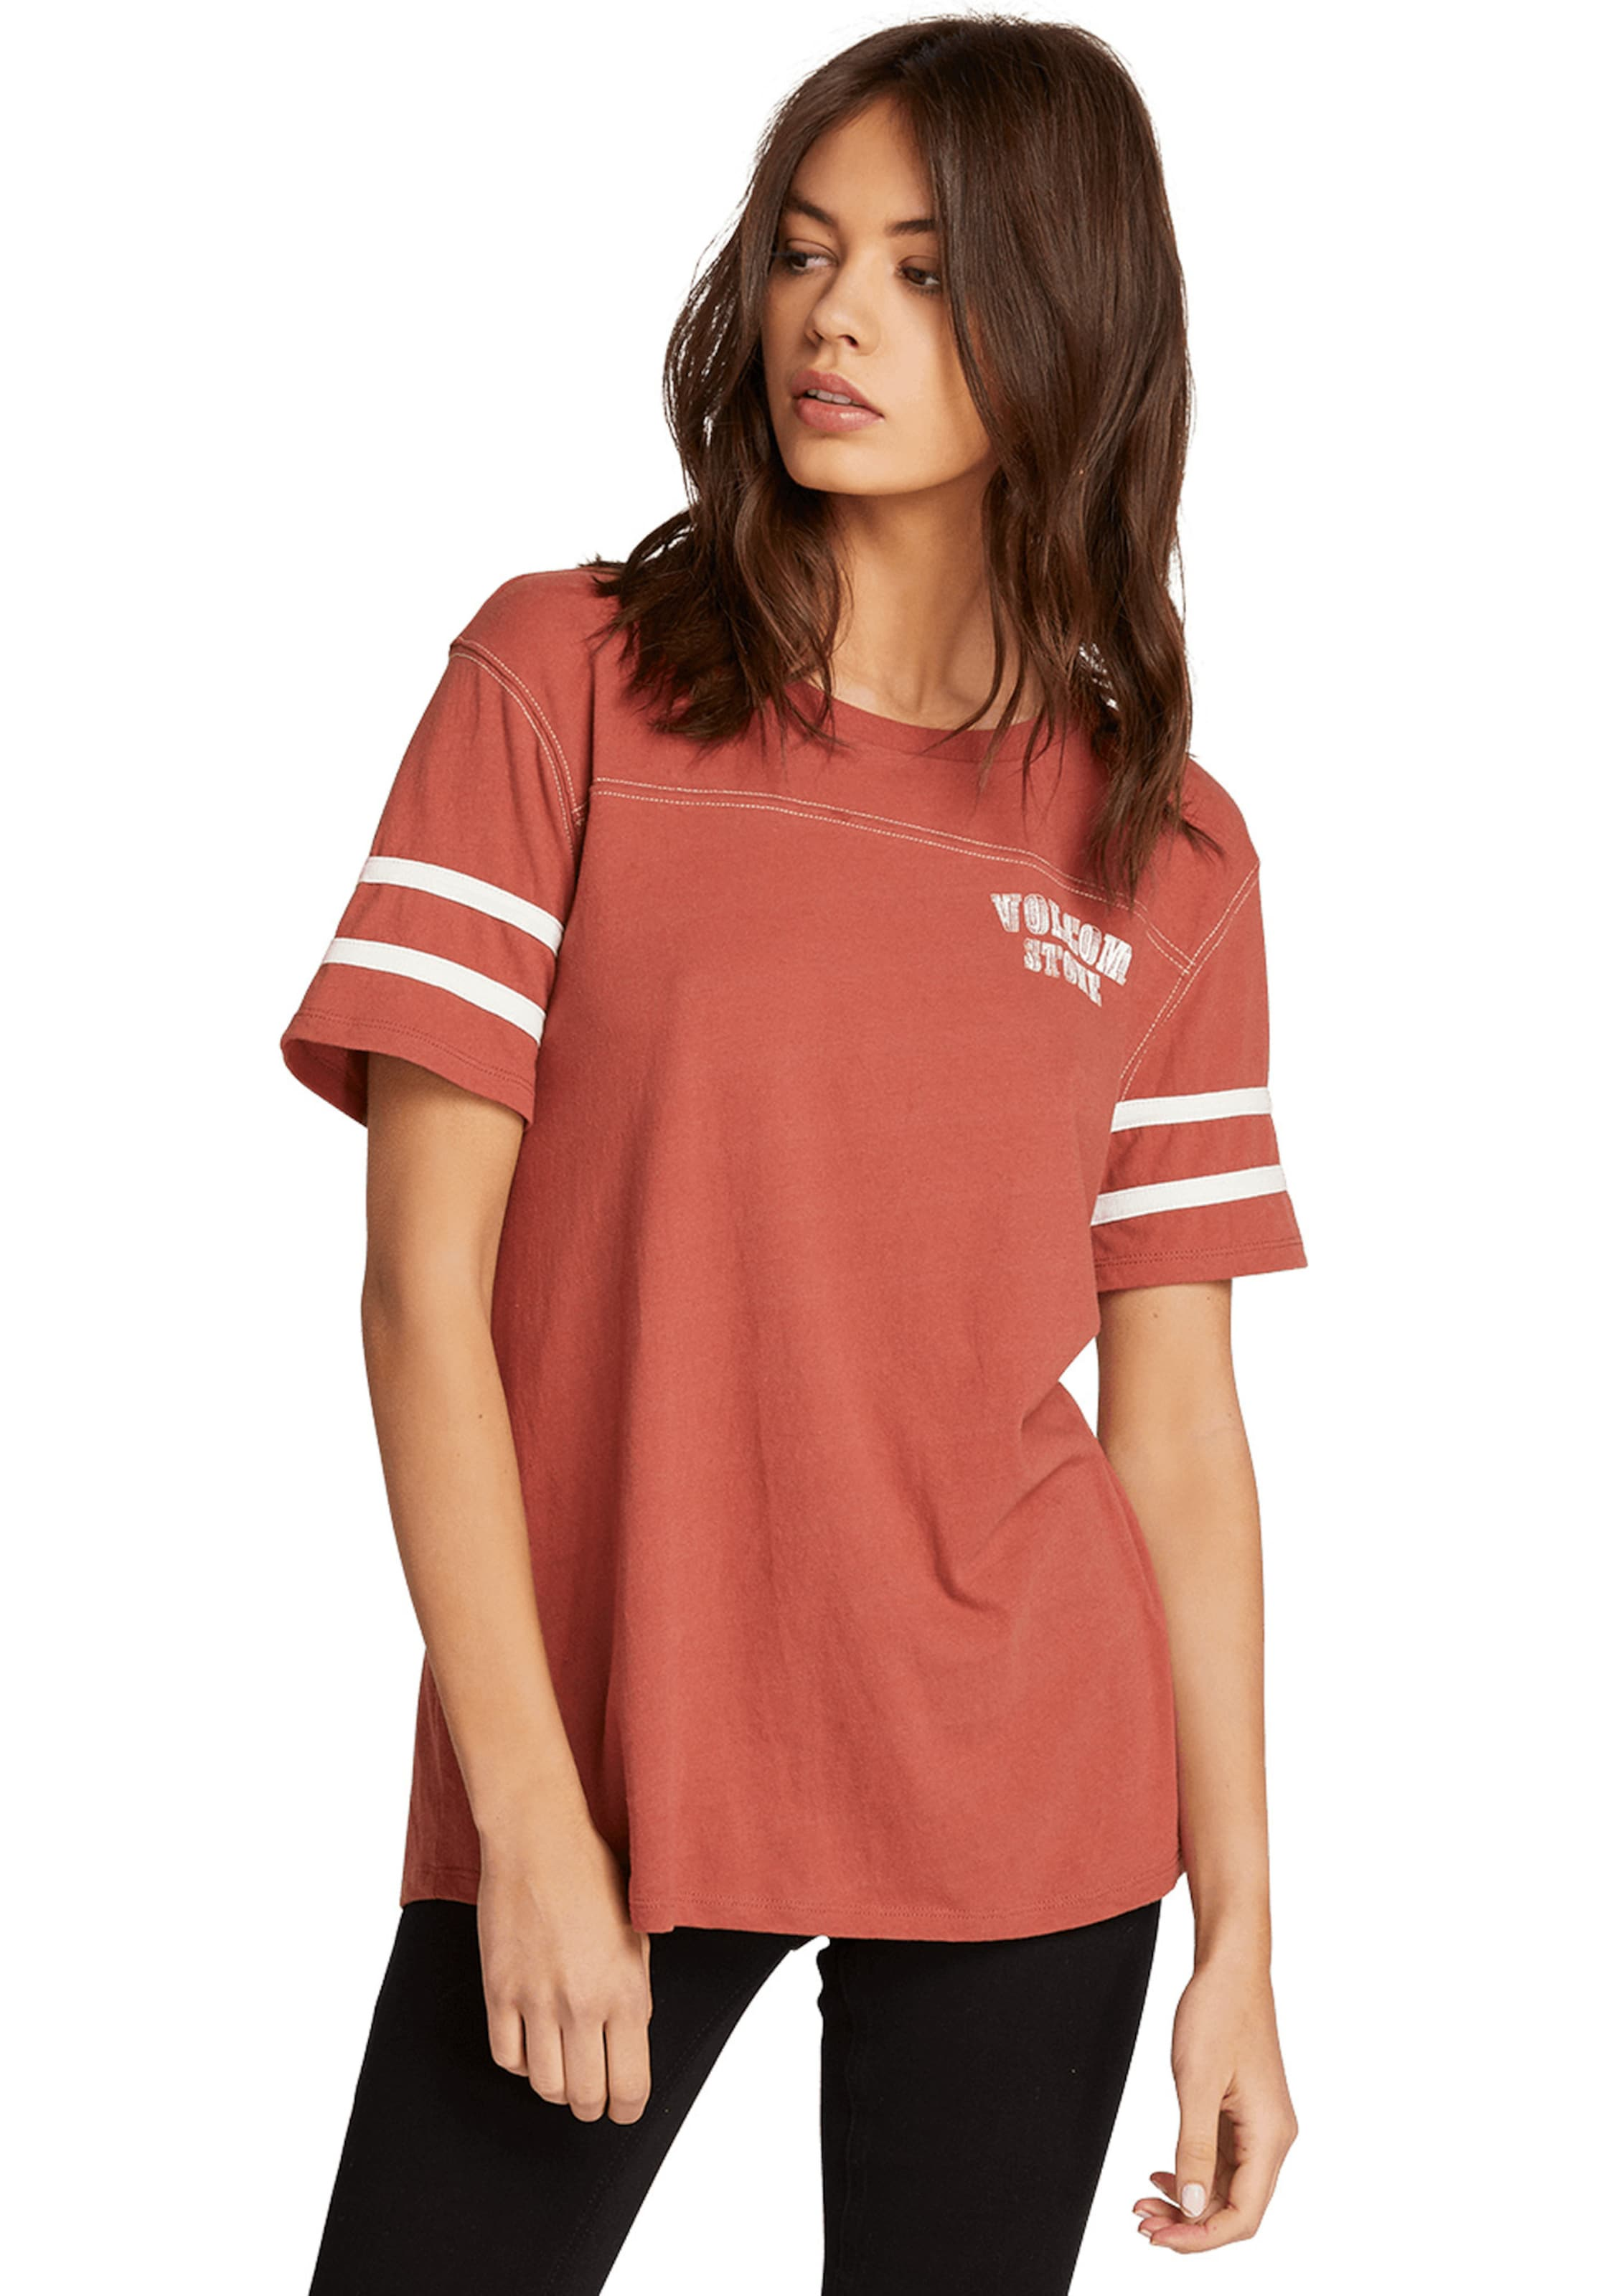 T 'streakin Stone' Rot shirt In Volcom Y7gybf6